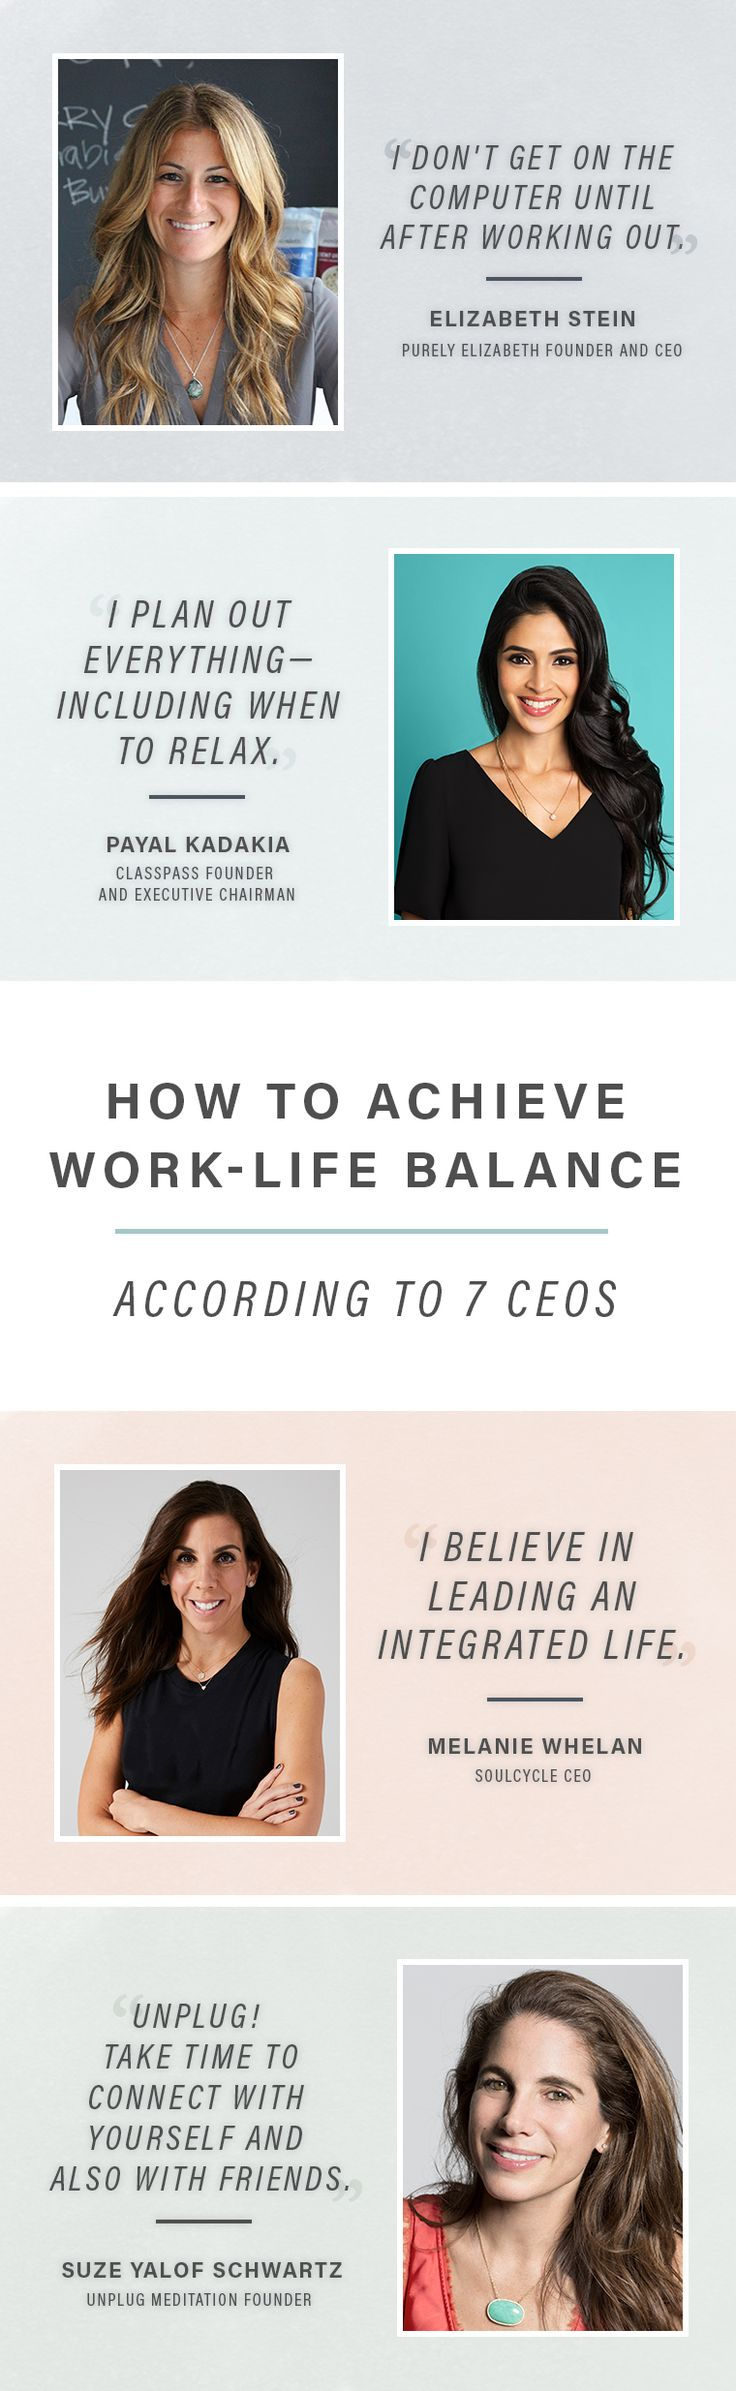 how to find work life balance